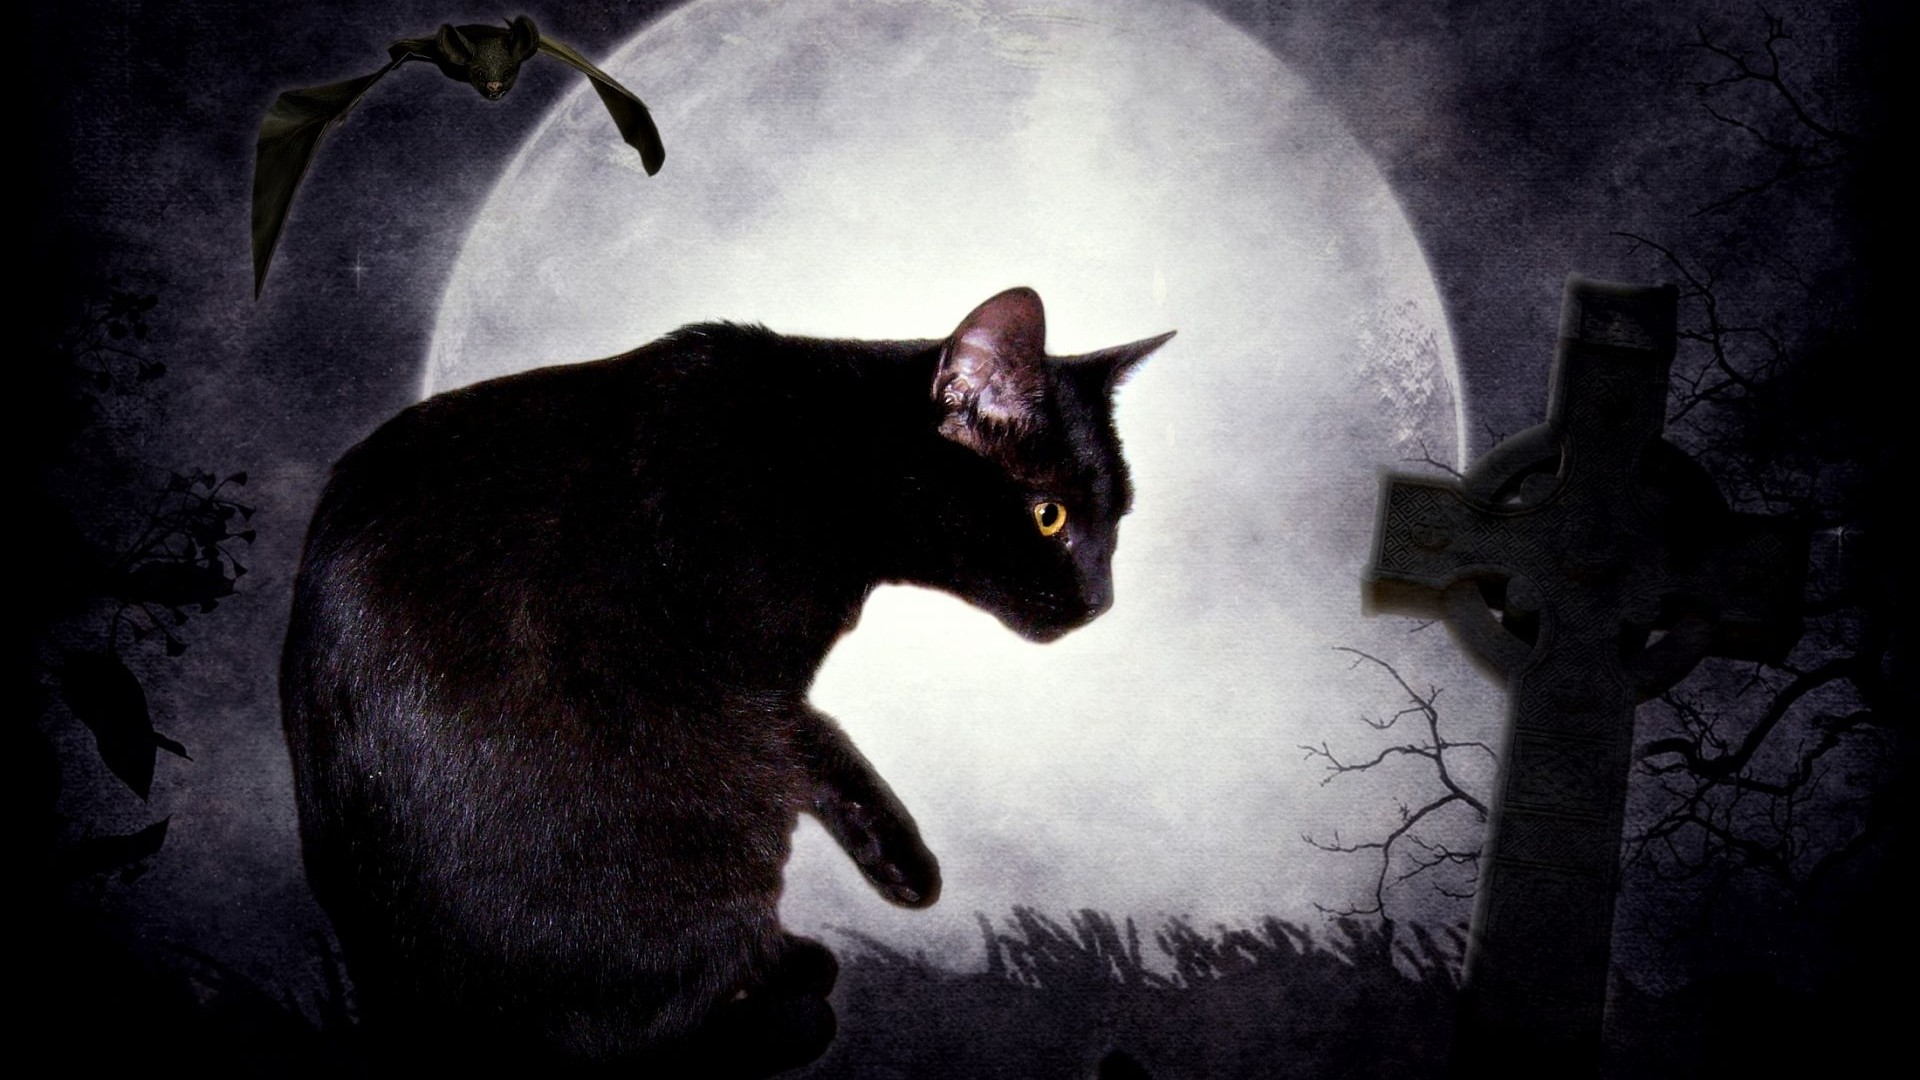 fantasy-dark-cats-Black-Cat-fantasy-art-digital-art-cemetery-Edgar-Allan-Poe-bats-The-Black-wallpaper-wp3805214